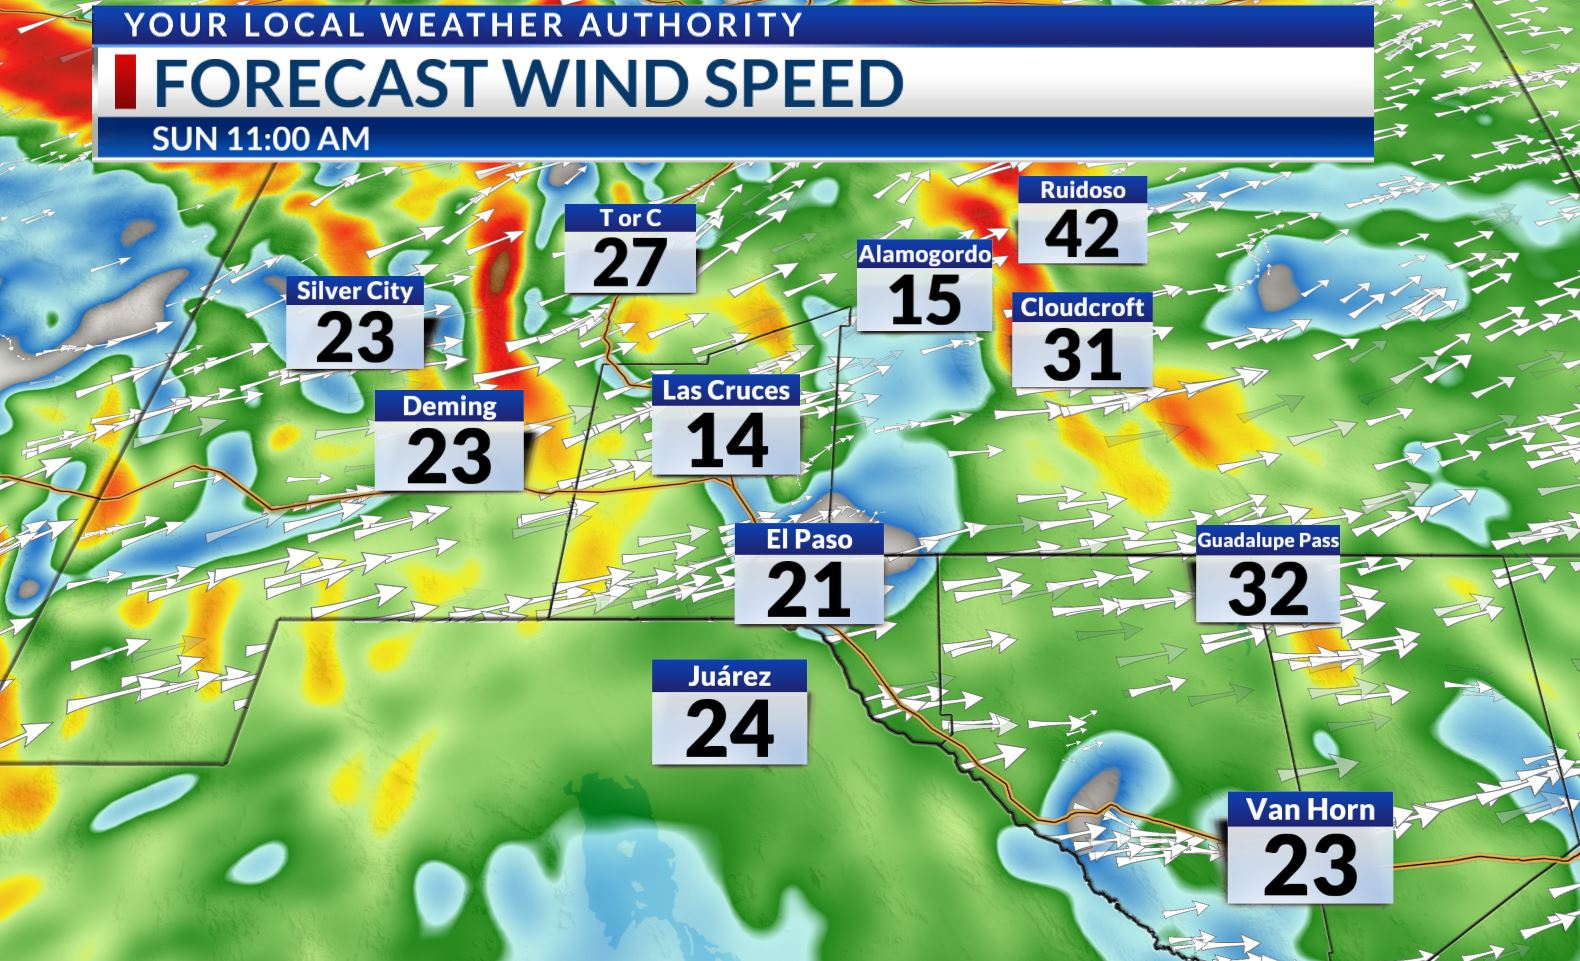 Weather Authority Alert Low Pressure System Causing High